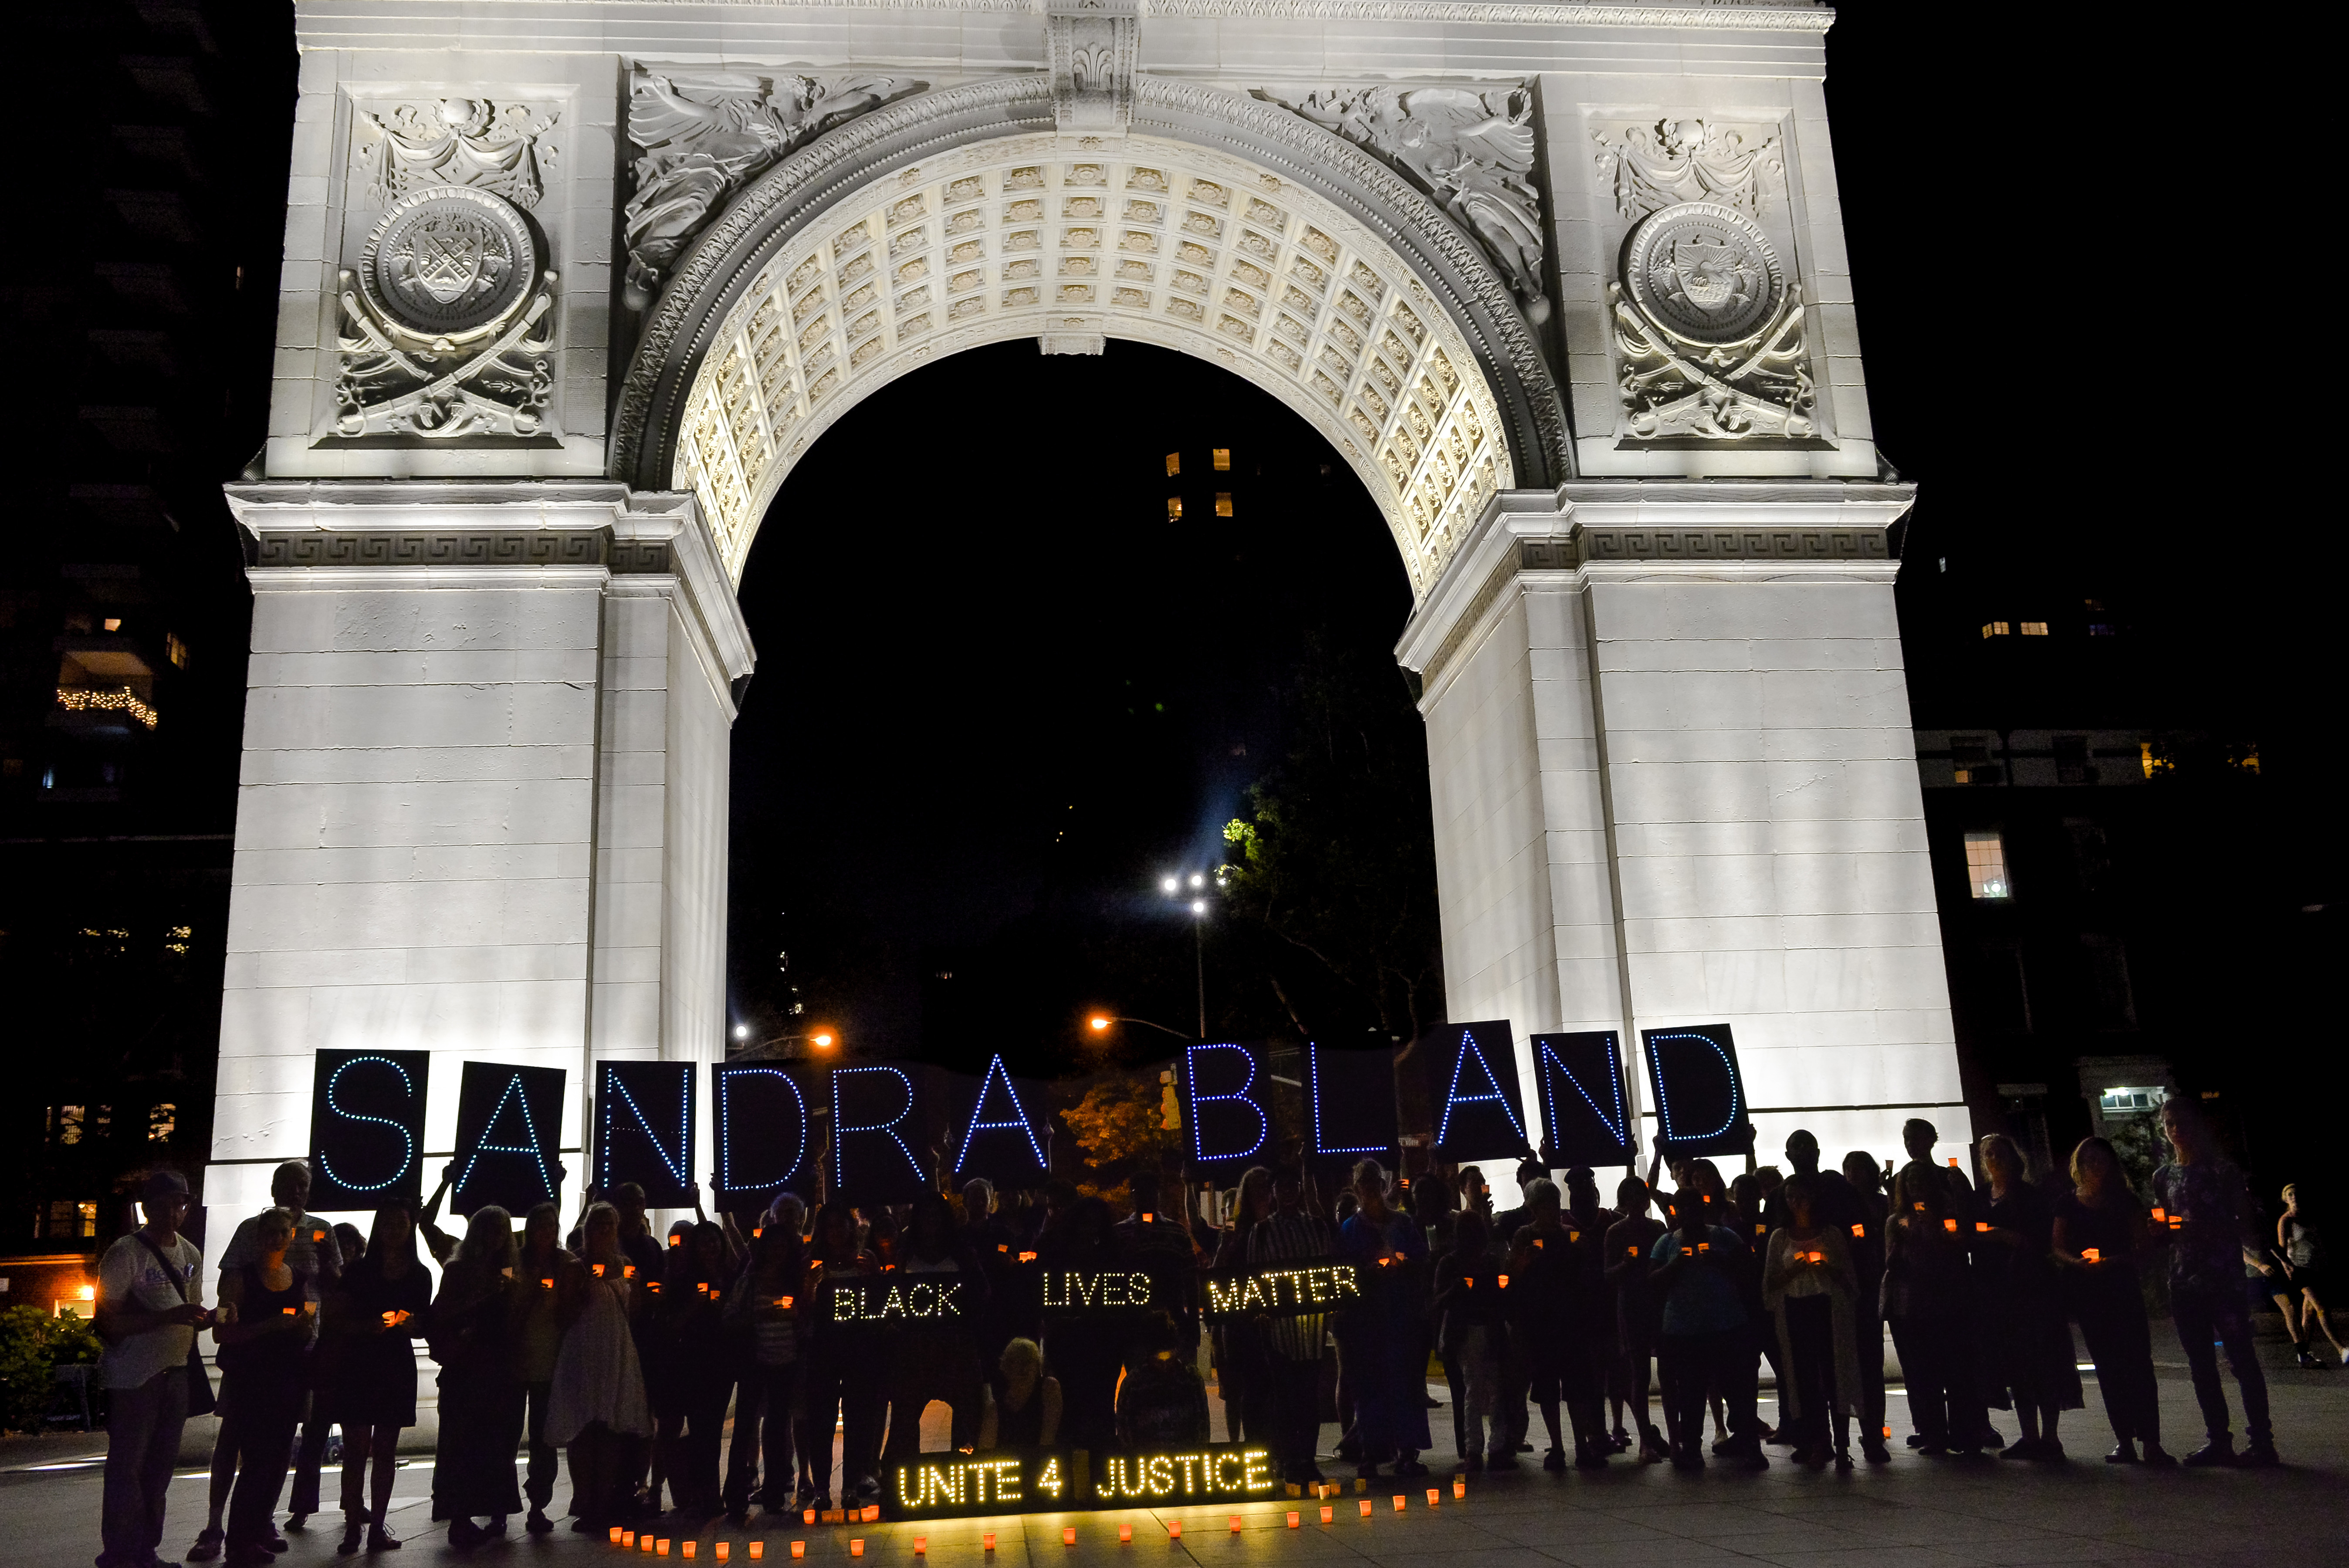 Protestors demonstrate outside Washington Square Park, New York (Source: HBO)